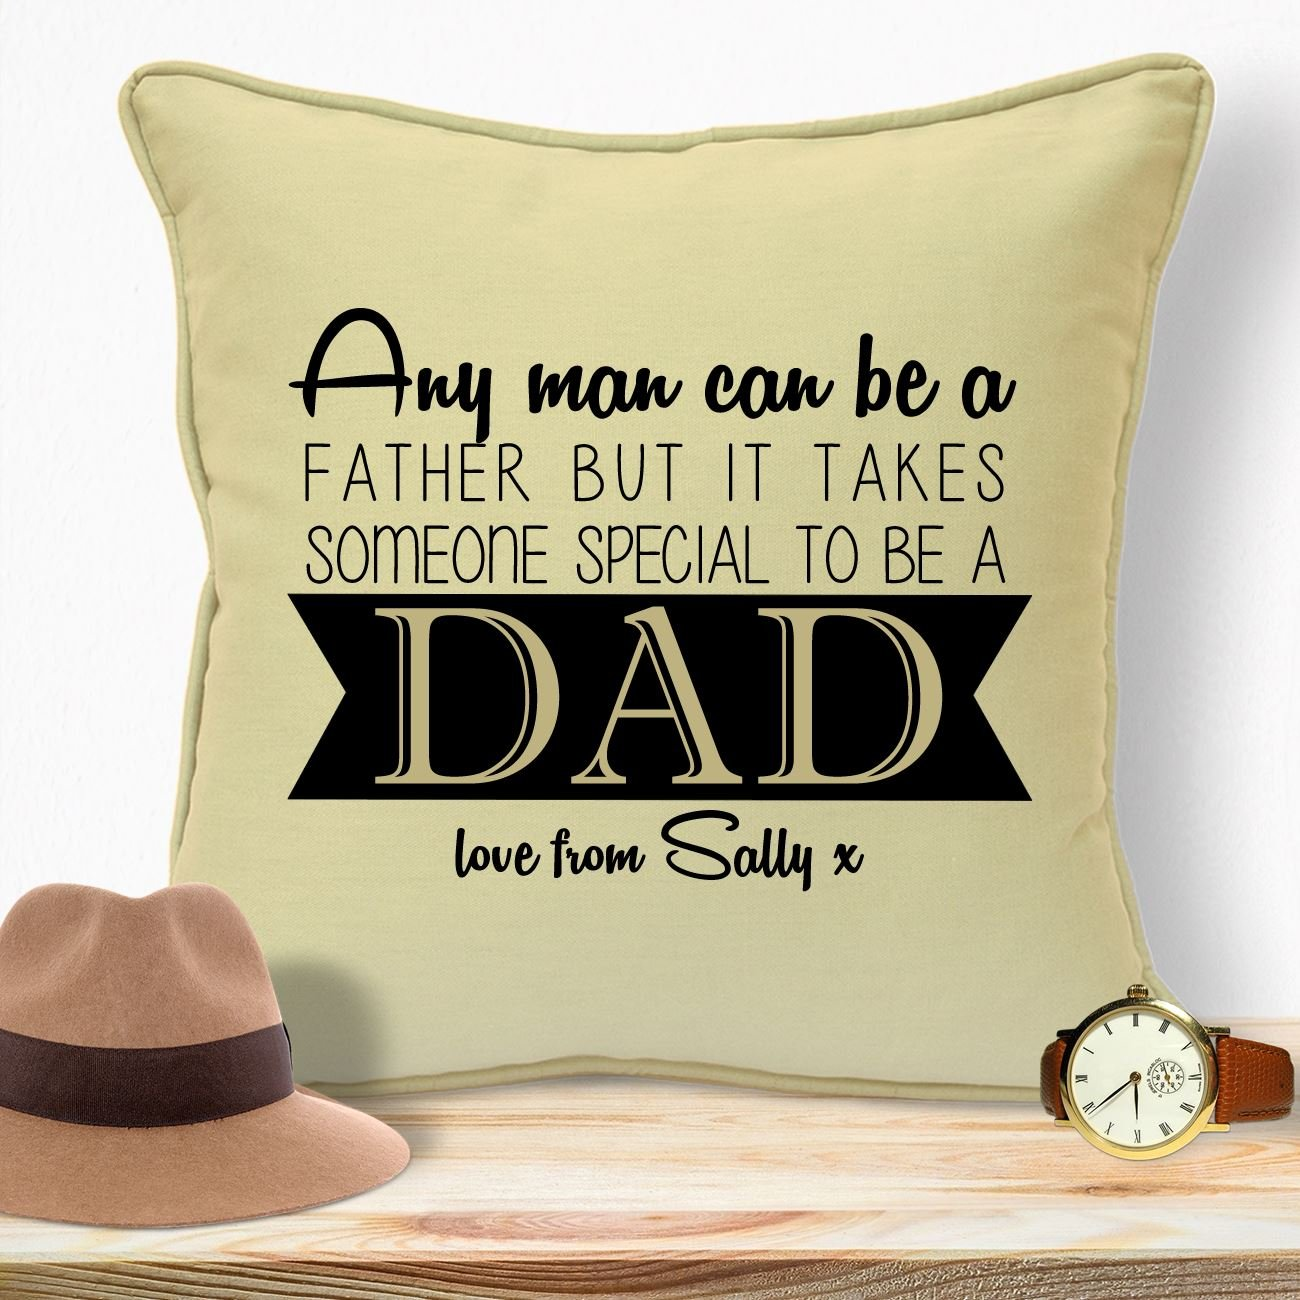 Personalised Gifts For Dad Daddy Step Dad Husband Father In Law Grandpa Papa Grampa Fathers Day Birthday Christmas Xmas From Son Daughters Wife Baby Kids Bump Newborn Children Someone Special Cushion